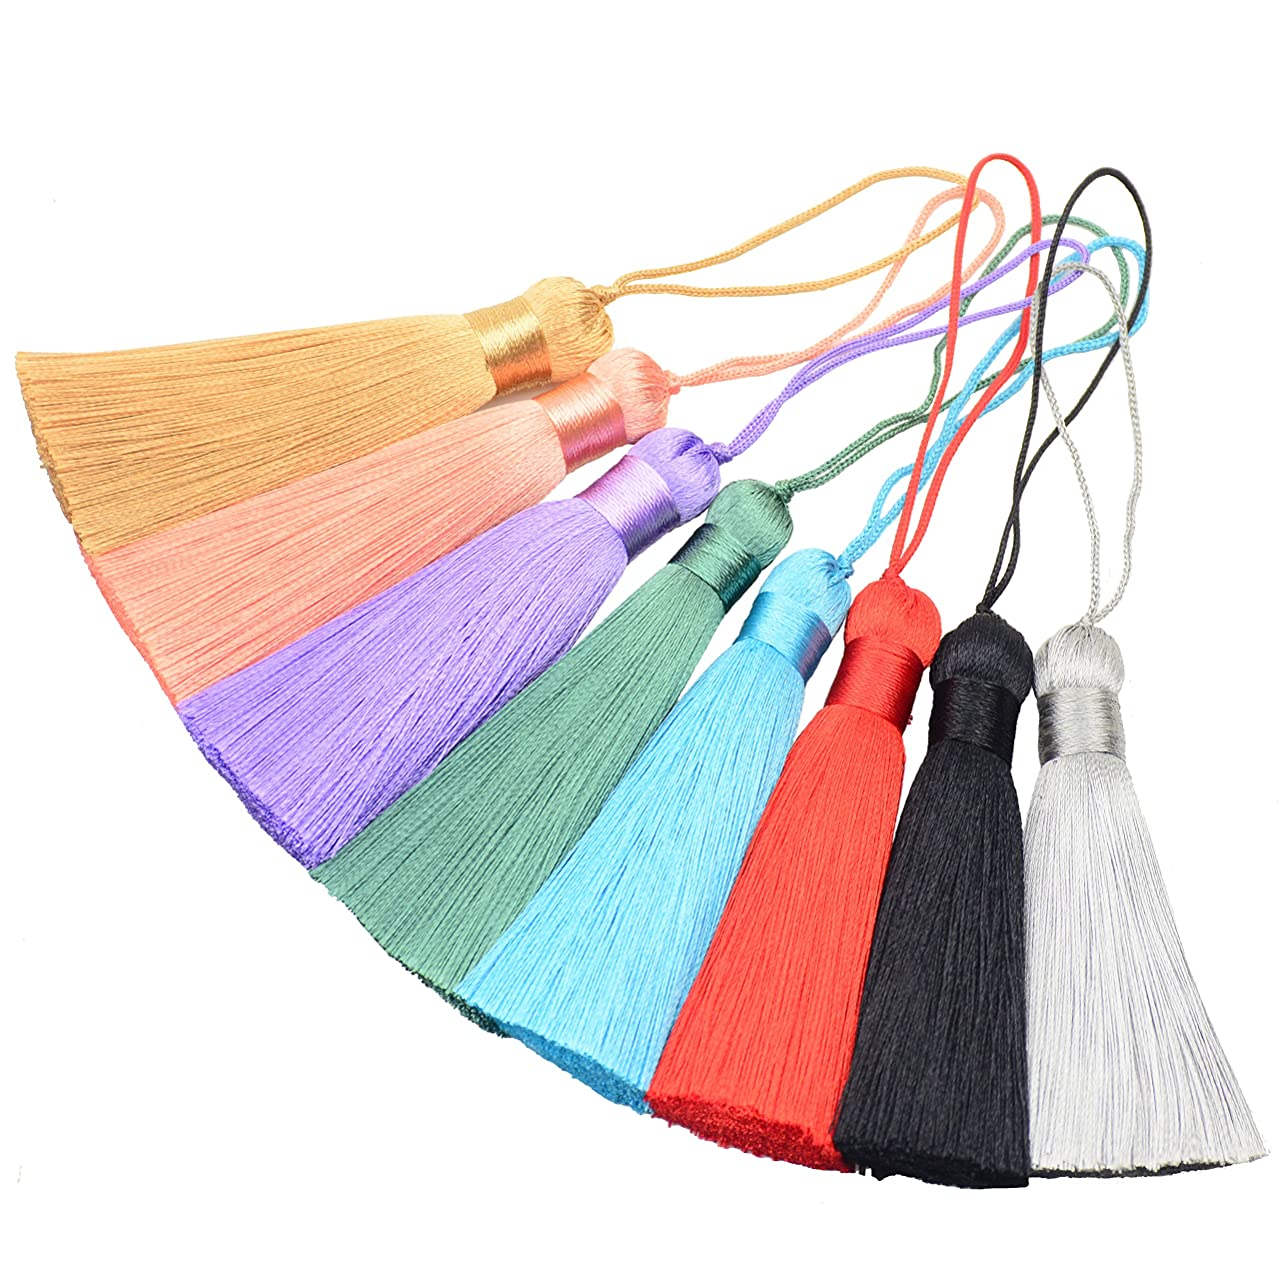 Makhry 8pcs 16cm/6.28 inch Cute Chunky Tassels Soft Elegant Handmade Silky Floss Tassels with 2.75 Inch Cord Loop and Chinese Knot for Woman Earrings, Jewelry Making, Souvenir, (Multi)